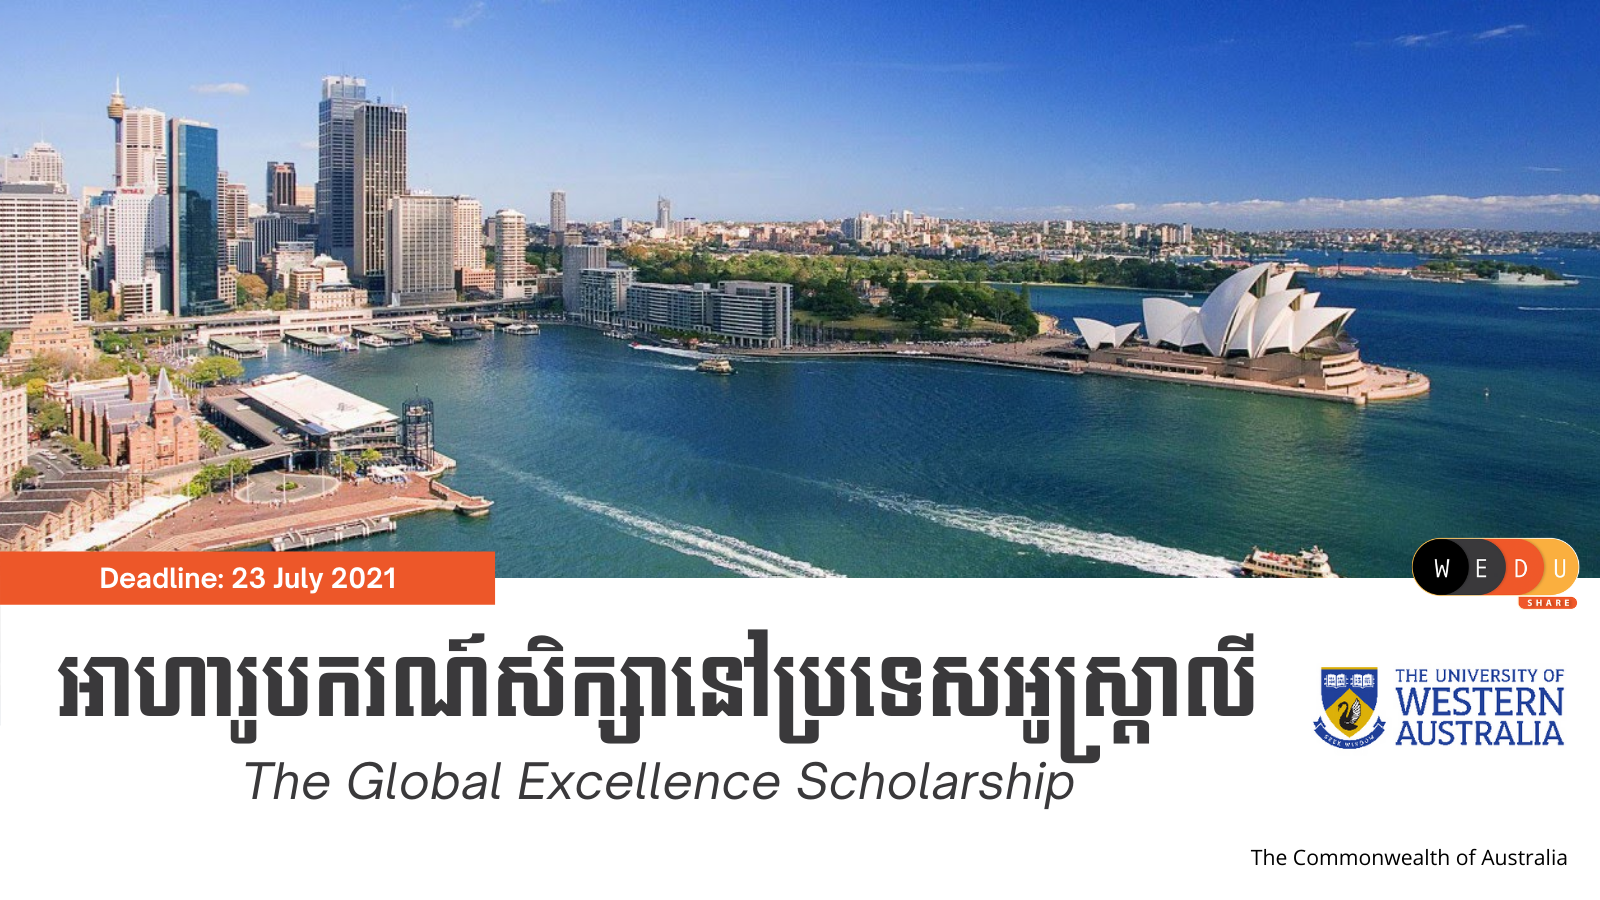 The Global Excellence Scholarship